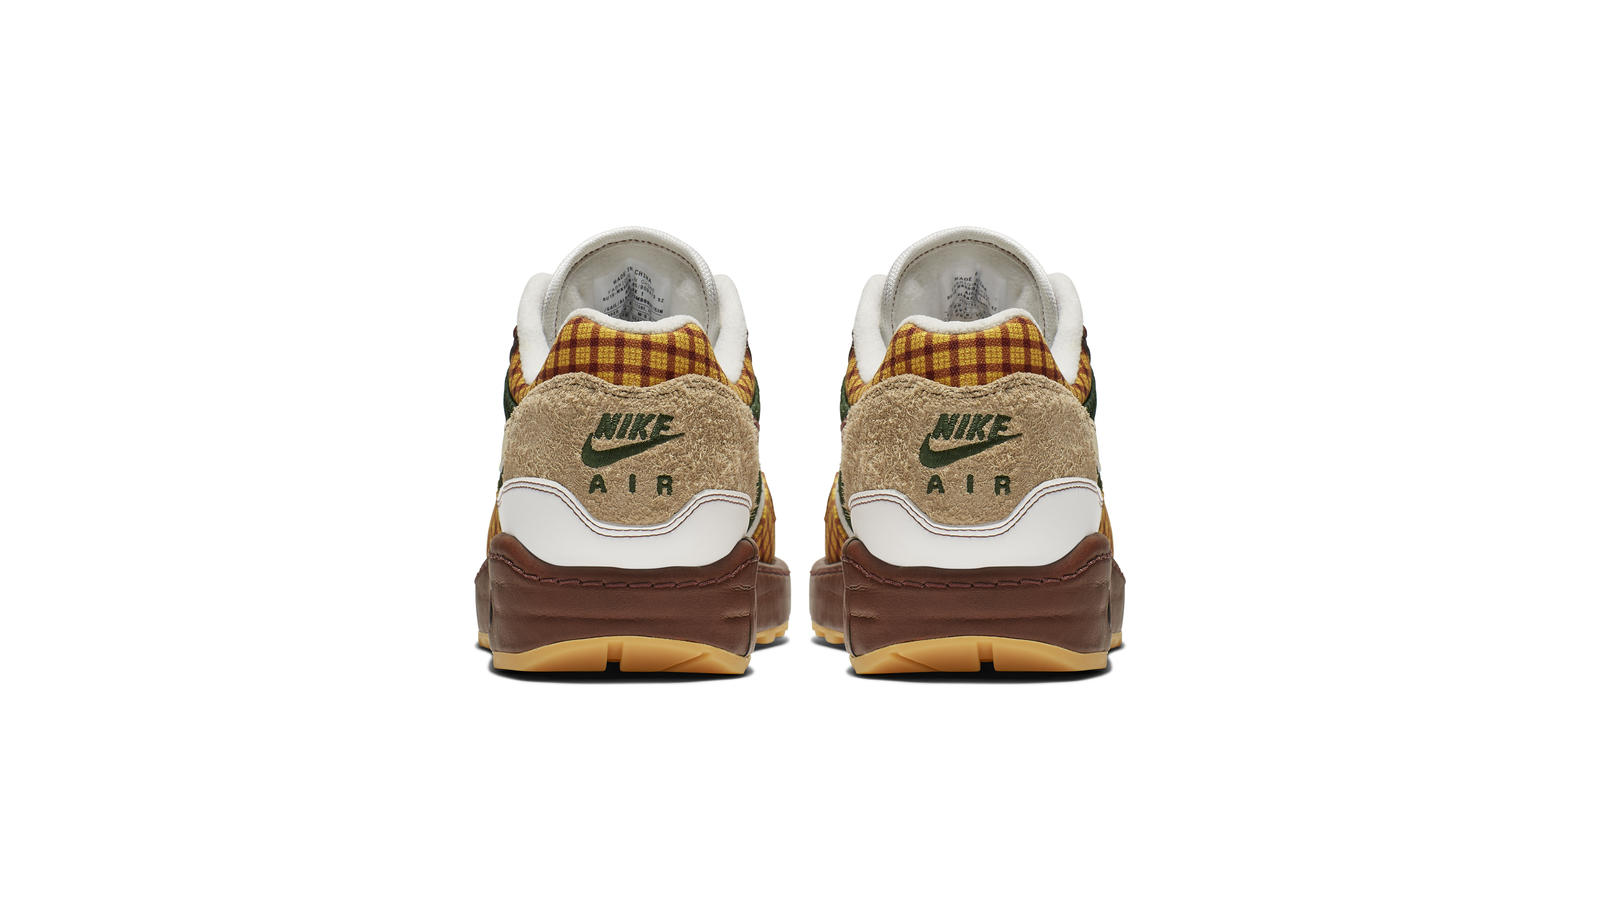 Say Hello to the Missing Link x Nike Air Susan 1